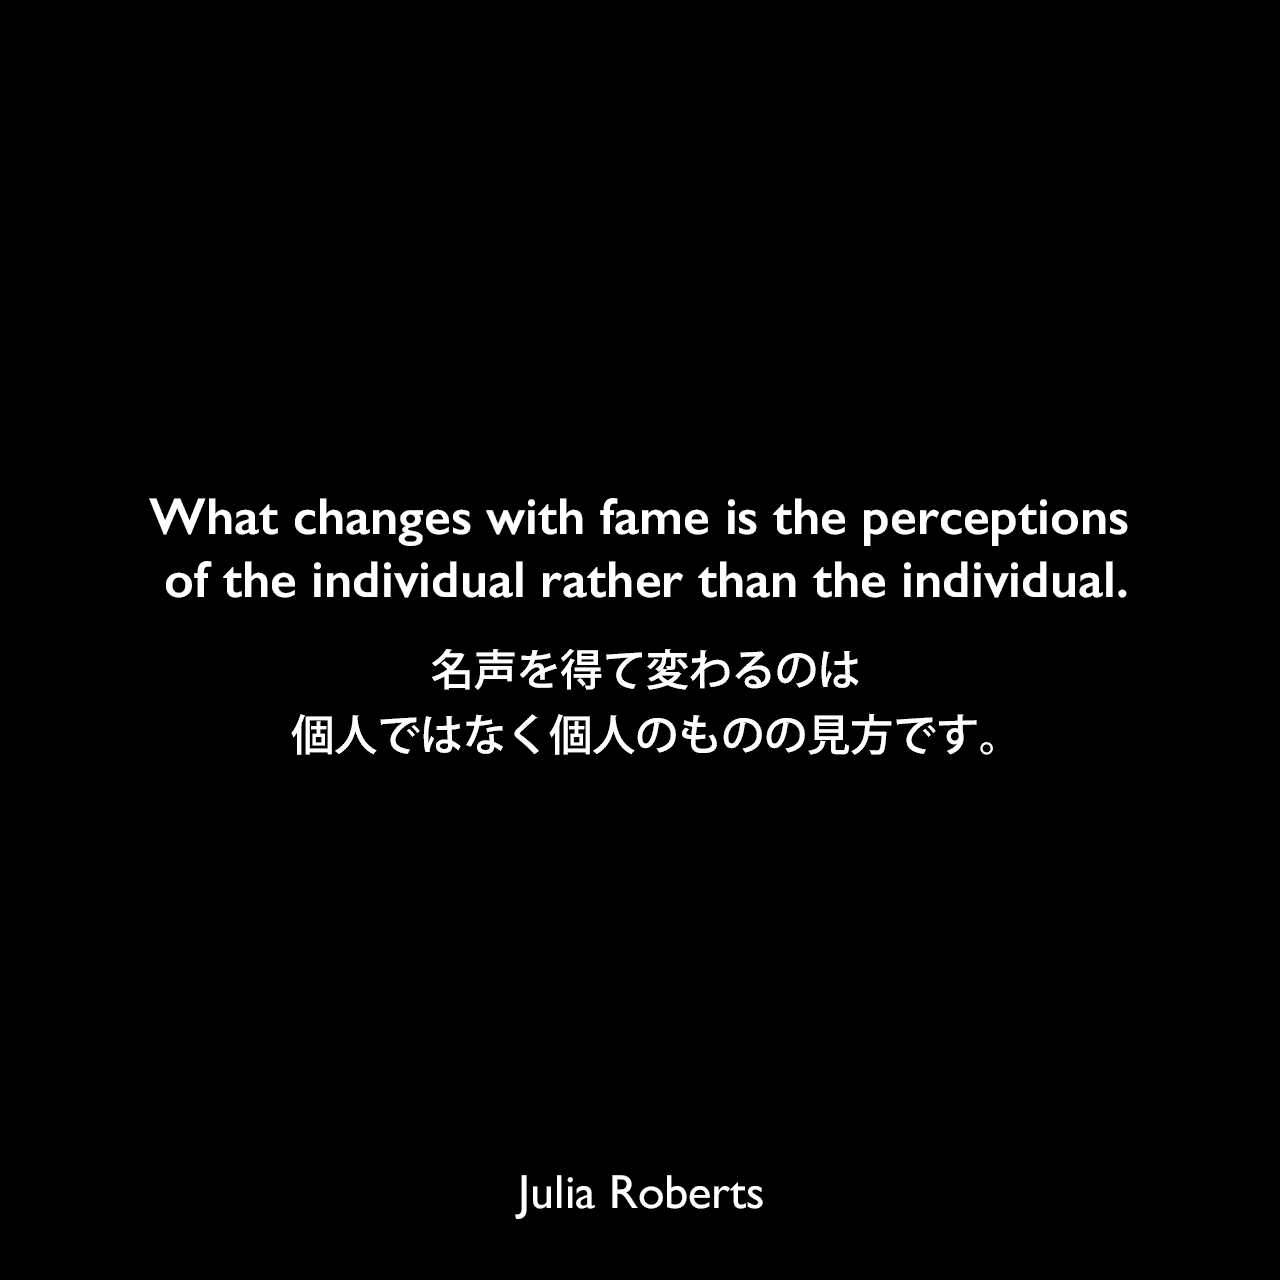 What changes with fame is the perceptions of the individual rather than the individual.名声を得て変わるのは個人ではなく個人のものの見方です。Julia Roberts